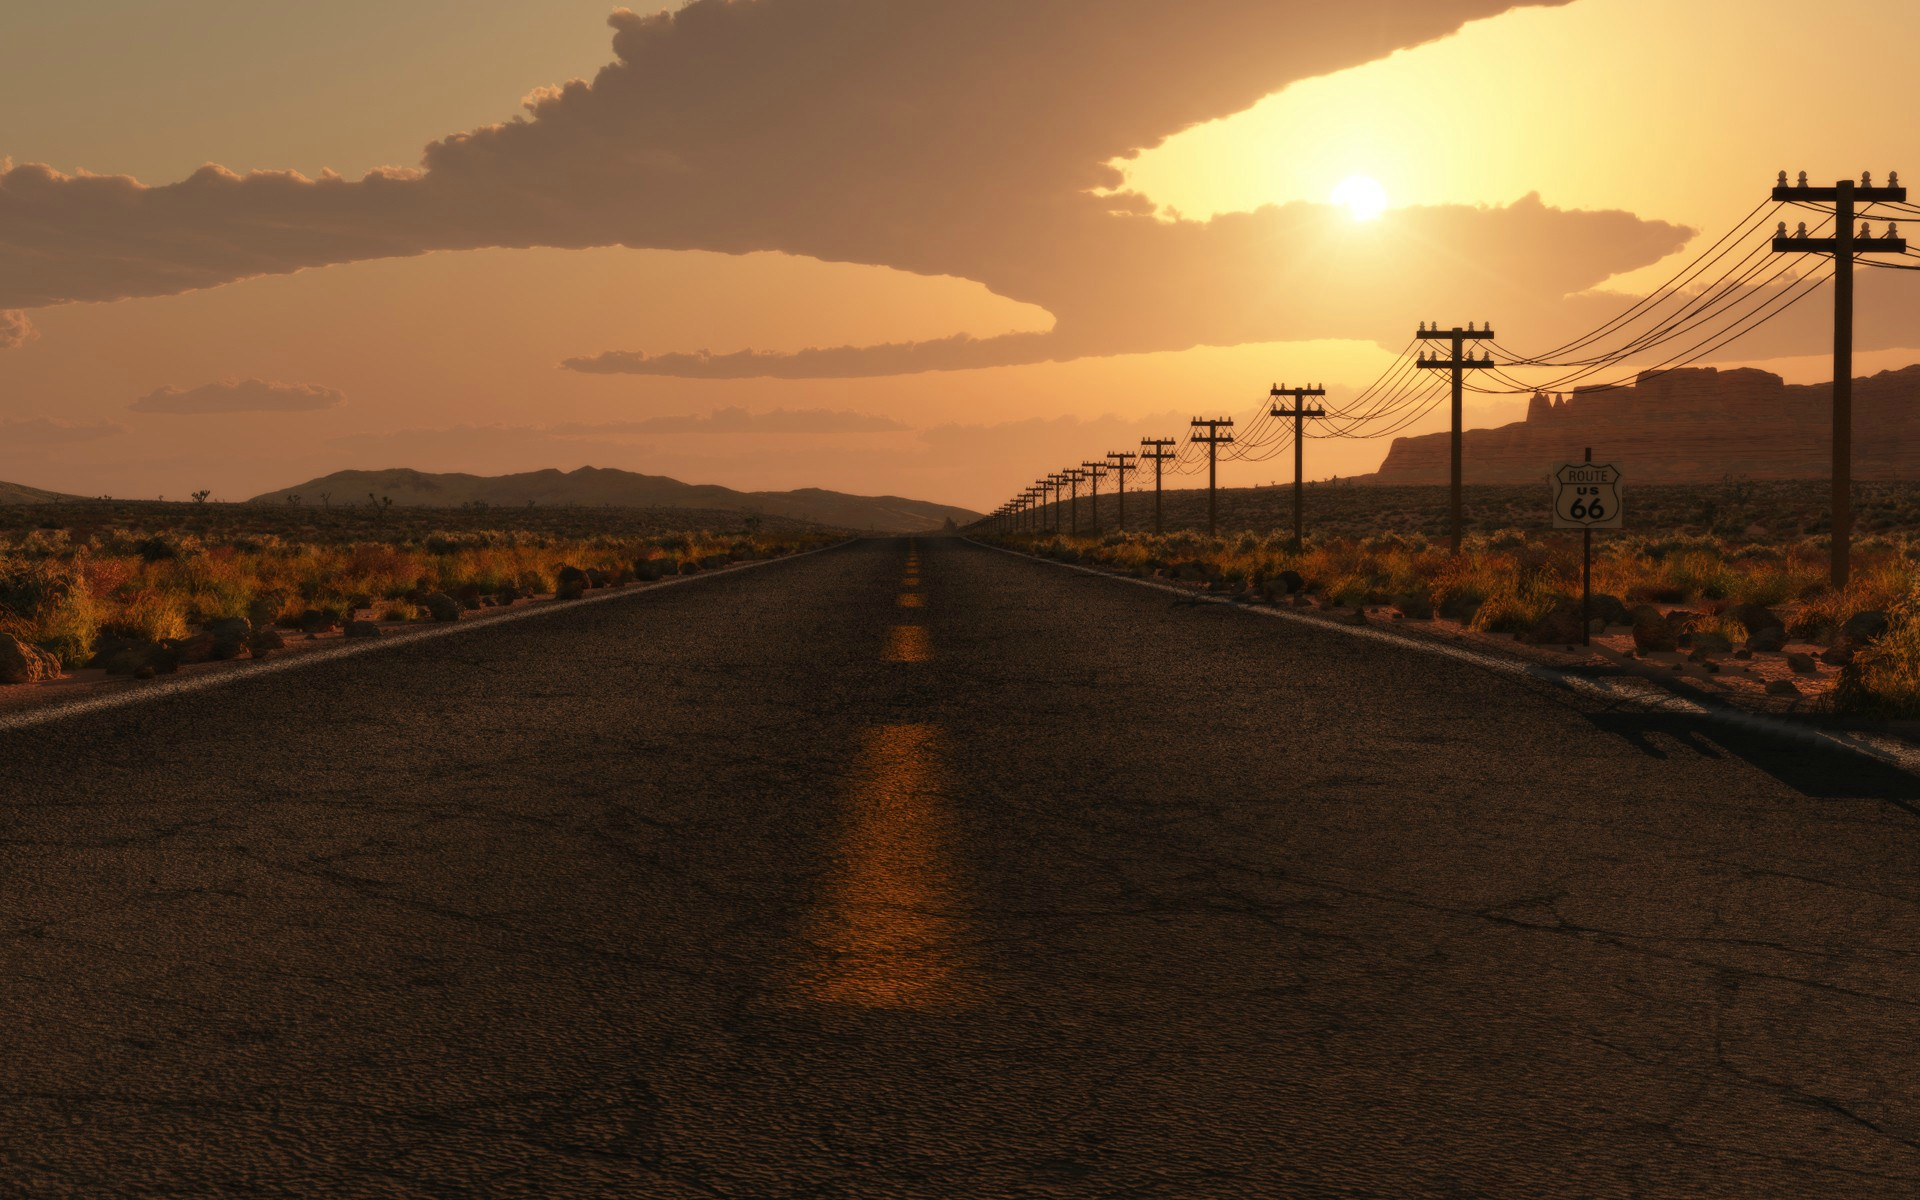 Road Sunset Wallpaper Sunset Road Full HD Wa...